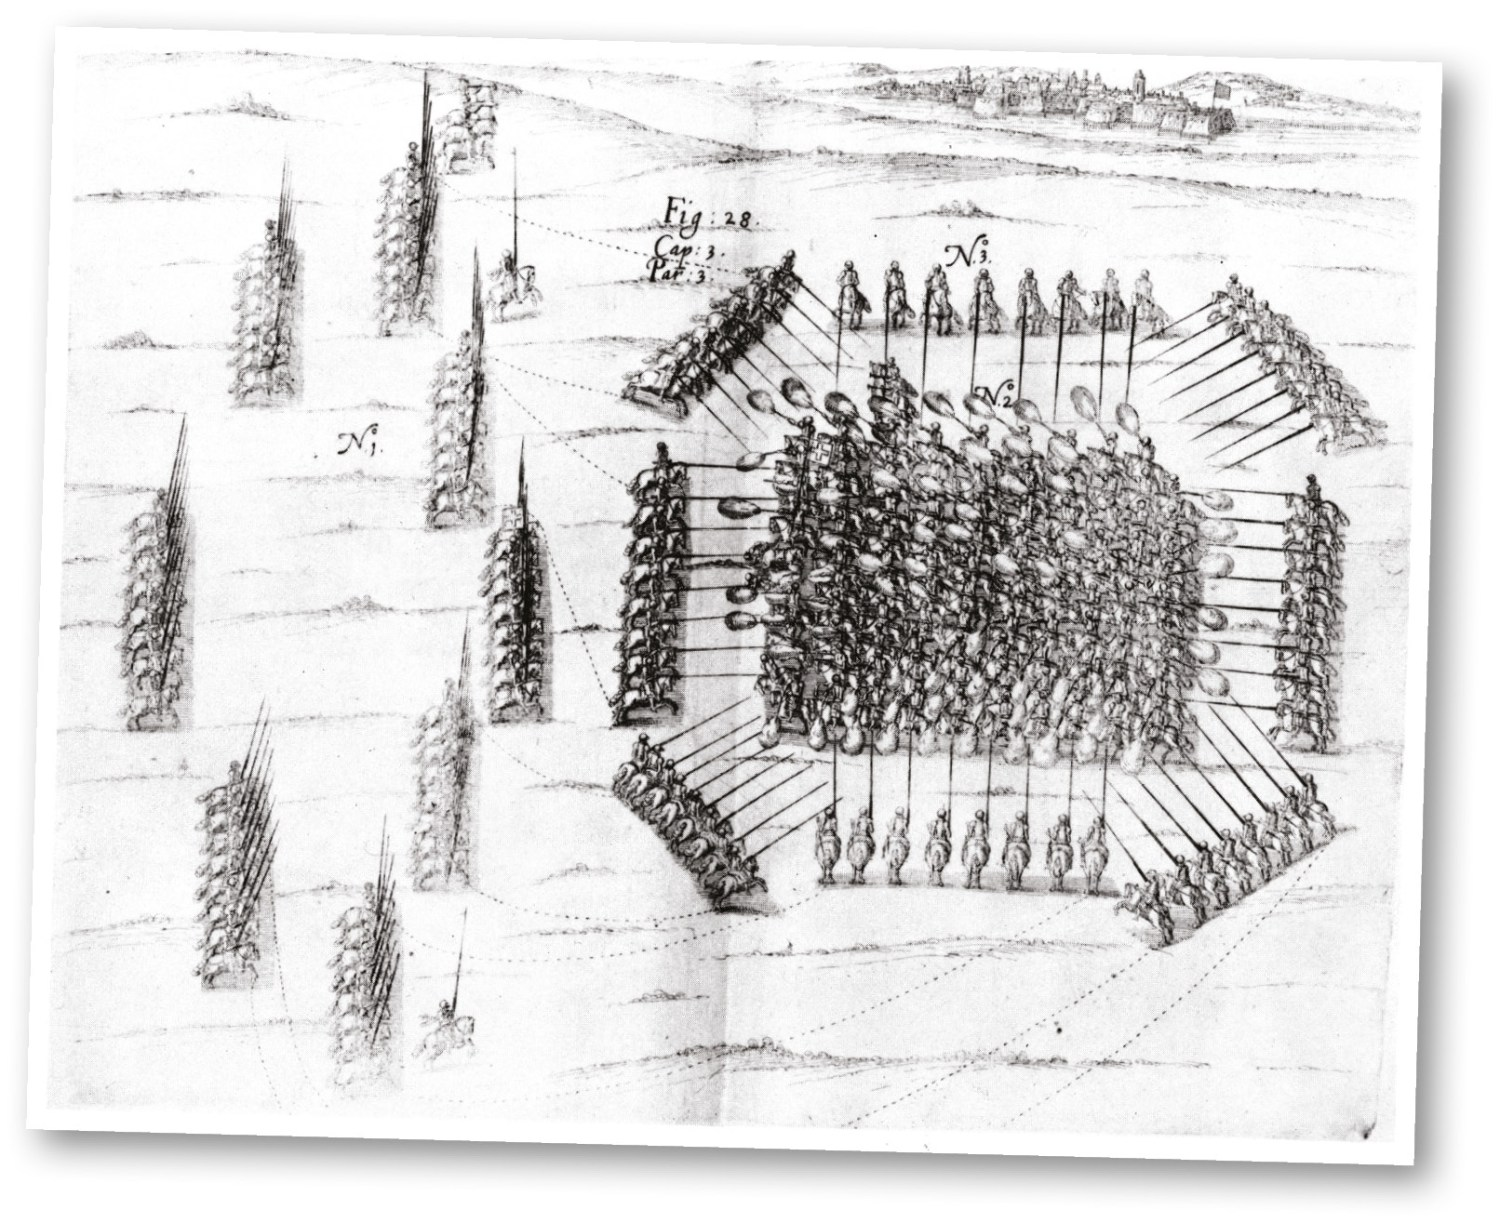 below A contemporary military manual, illustrating the drill of mounted pistoleers. RIGHT A contemporary representation of cavalry versus infantry combat in the 'pike-and-shot' era.